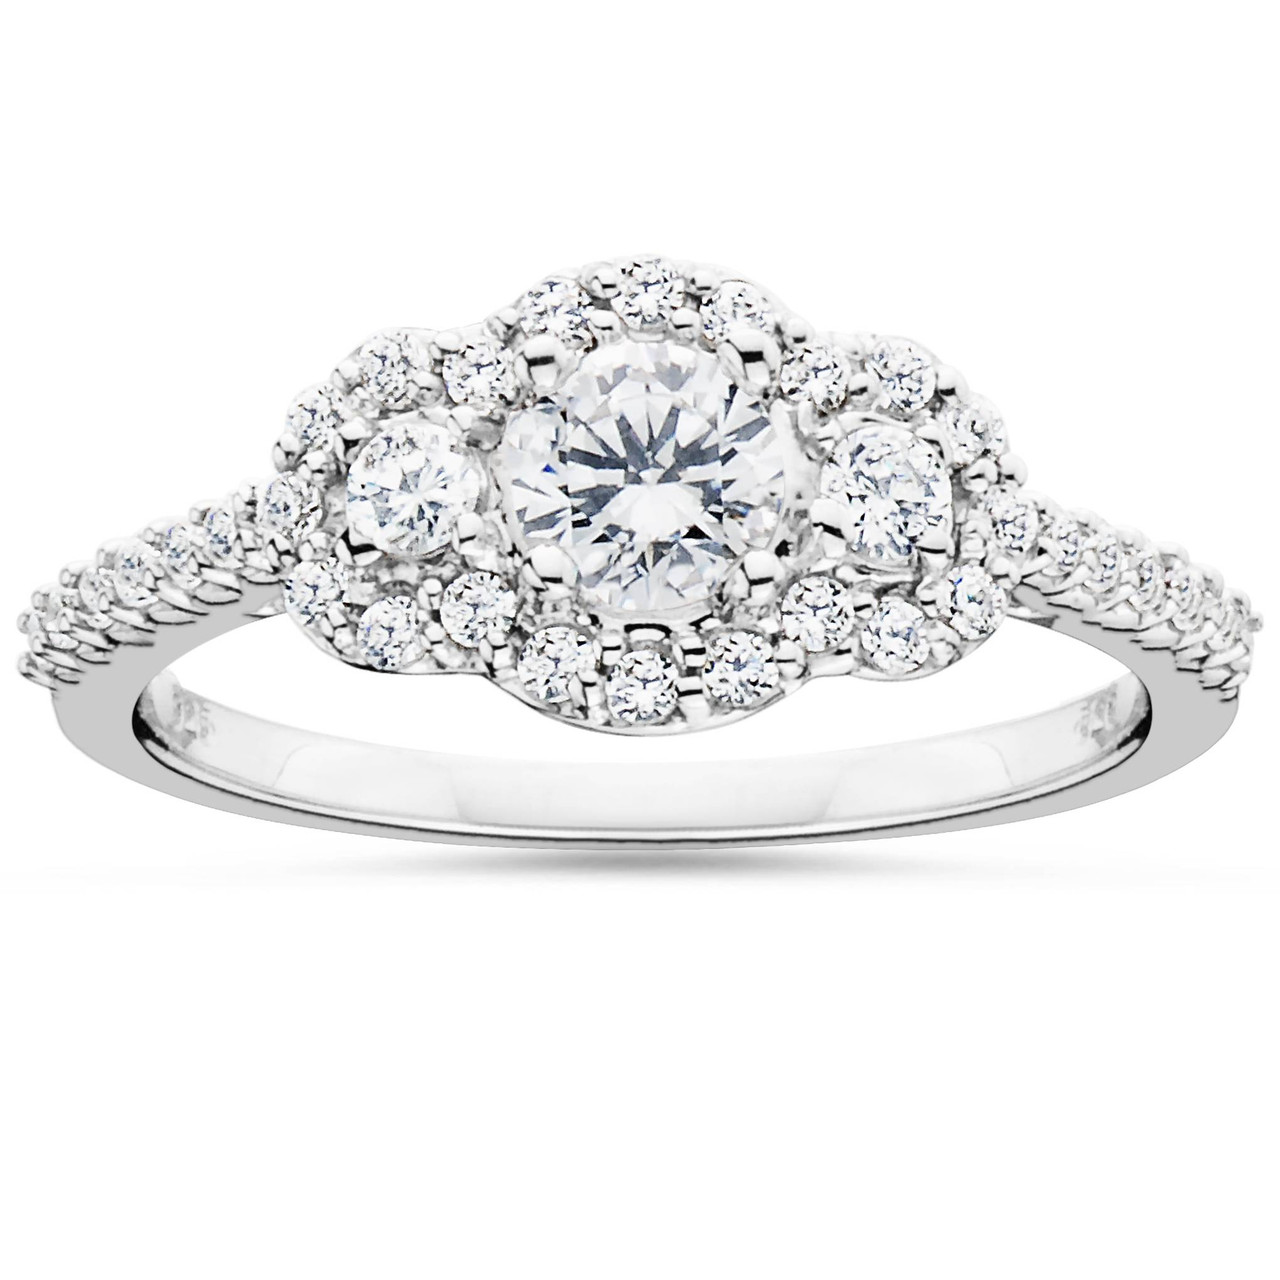 5c34a3a72bac3 7/8 Carat 3-Stone Halo Diamond Anniversary Engagement Ring Solitaire ...